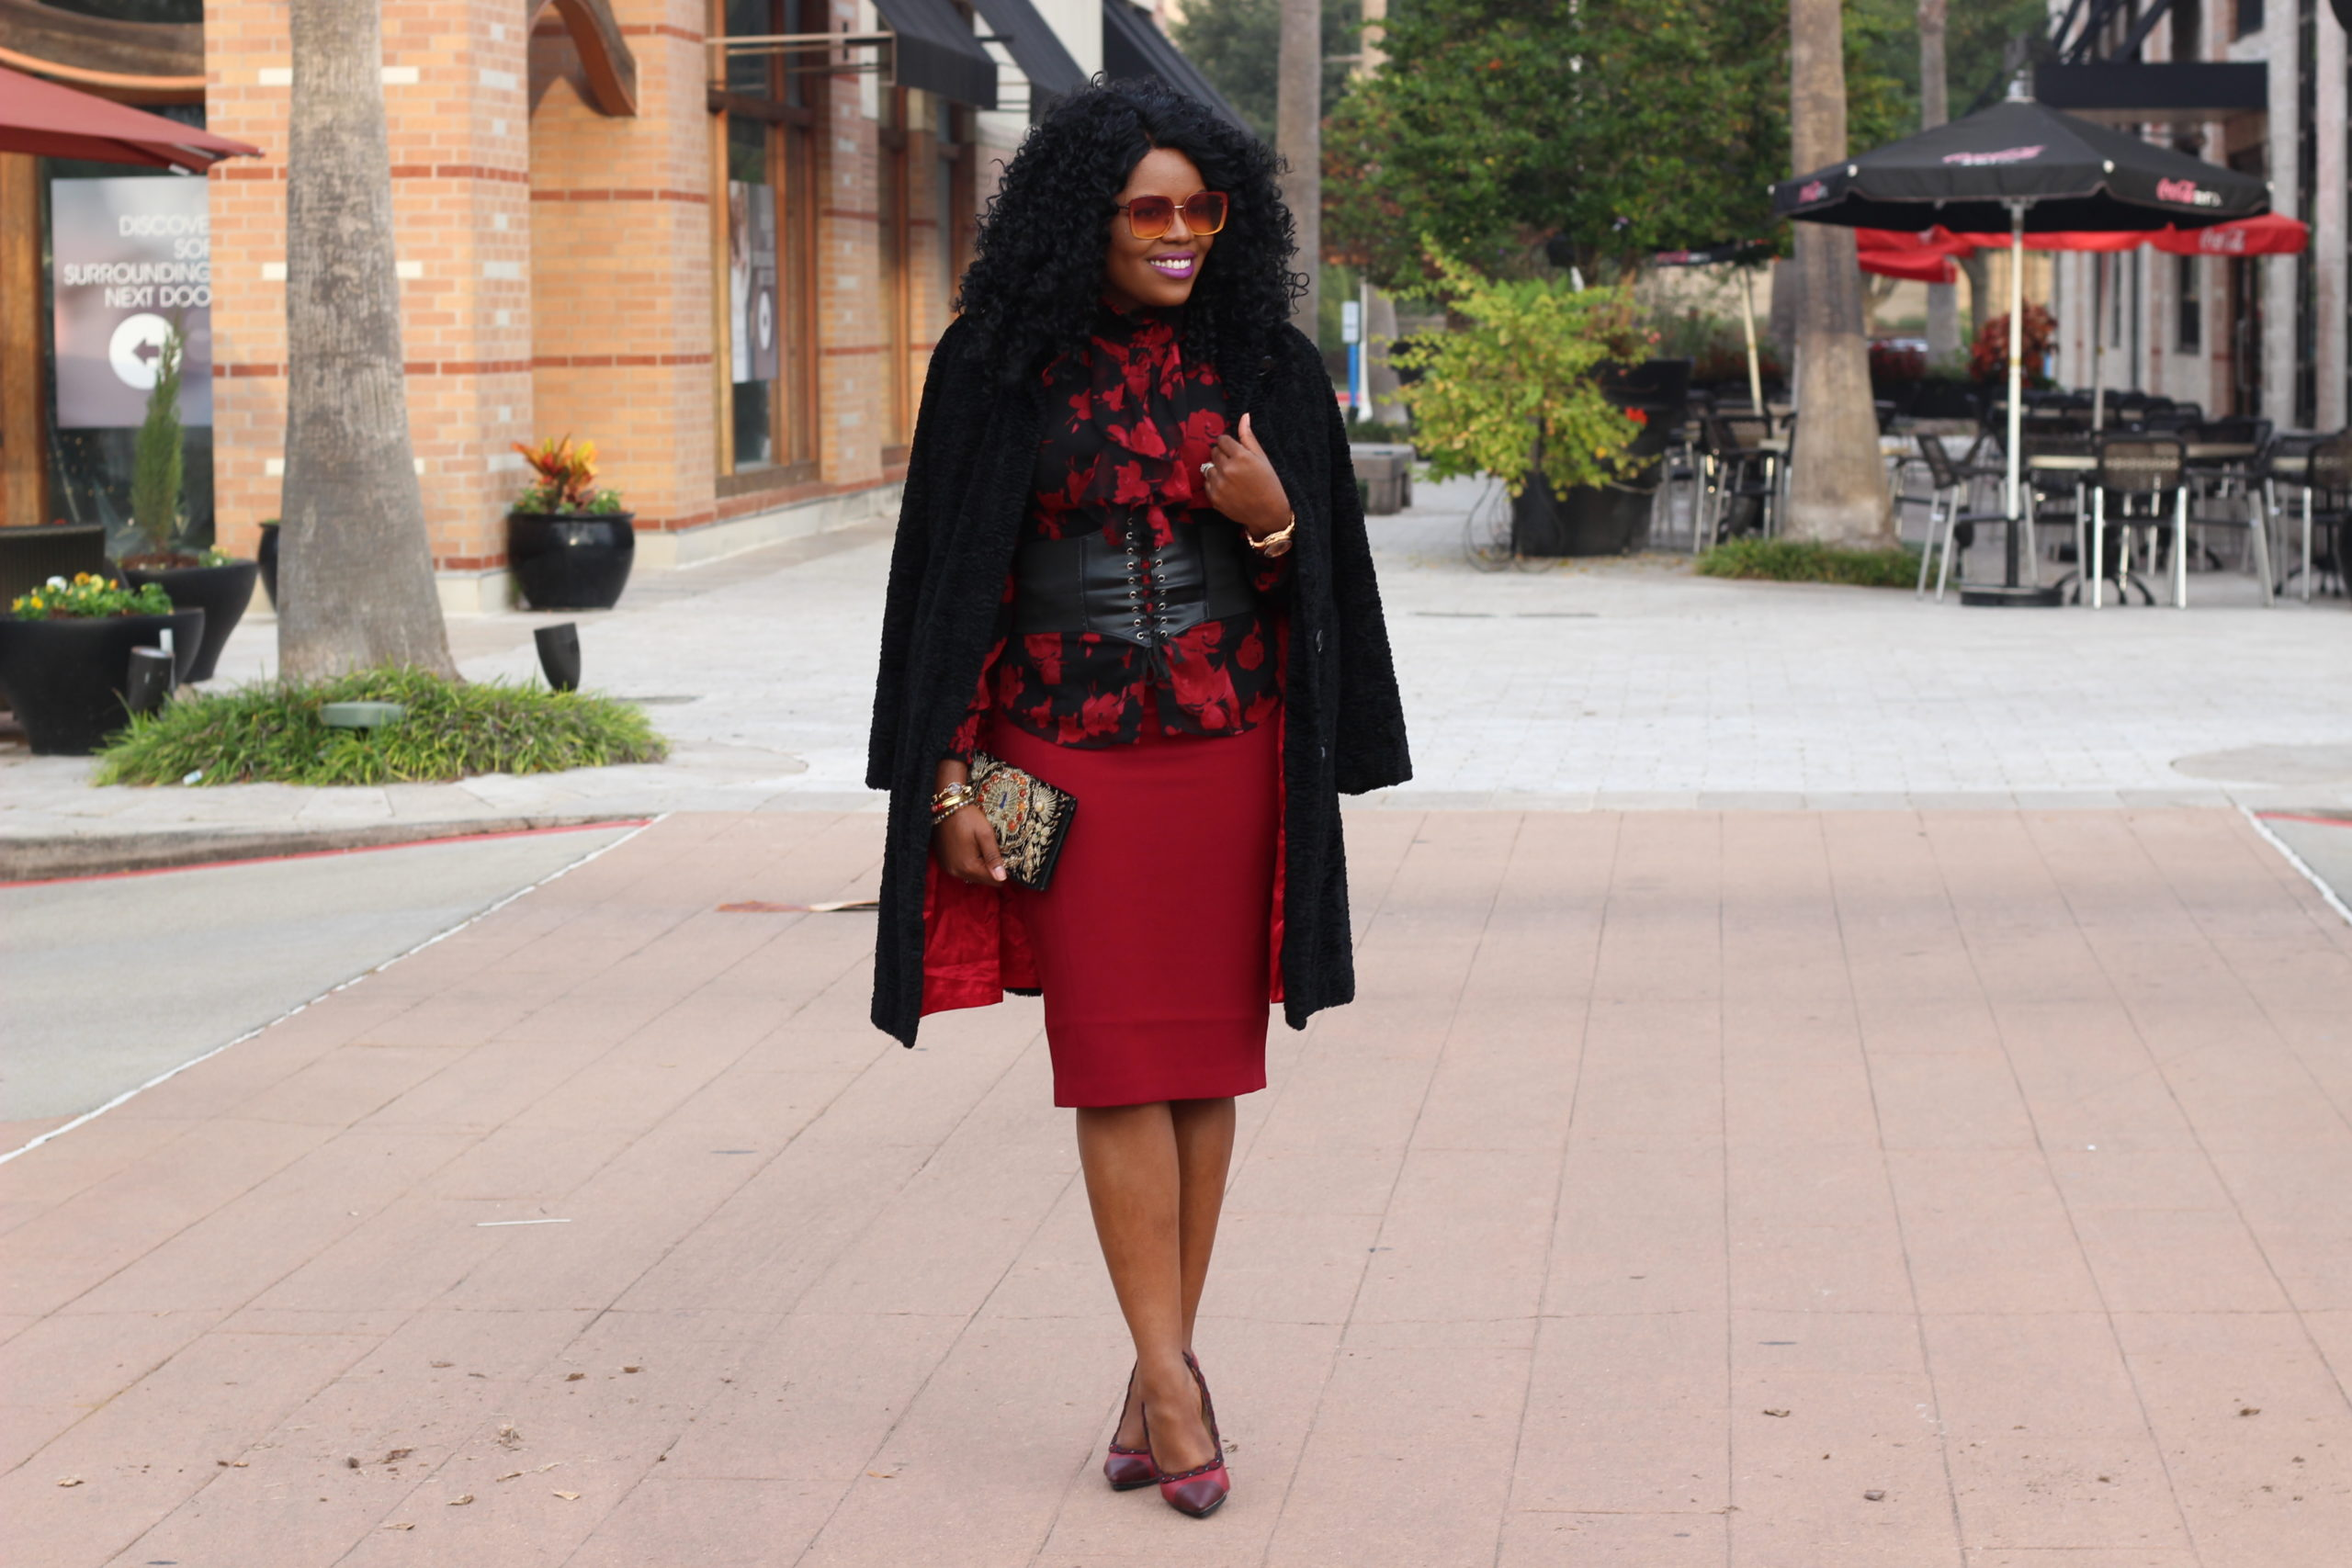 The Gift of Style - 1 Outfit, 2 Looks for your Holiday Party Floral Ruffle Top Red SuitableYou Pencil Skirt Red Shoedazzle Pumps Gold Heels Vintage Embroidered Clutch Purse Shop LC Shopping Links Burgundy Arch Crossbody Handbag Beehive Houston Boutique Sunglasses SheIn Corset Lace-up Belt Christmas Style Holiday Party Lookbok Fall Fashion